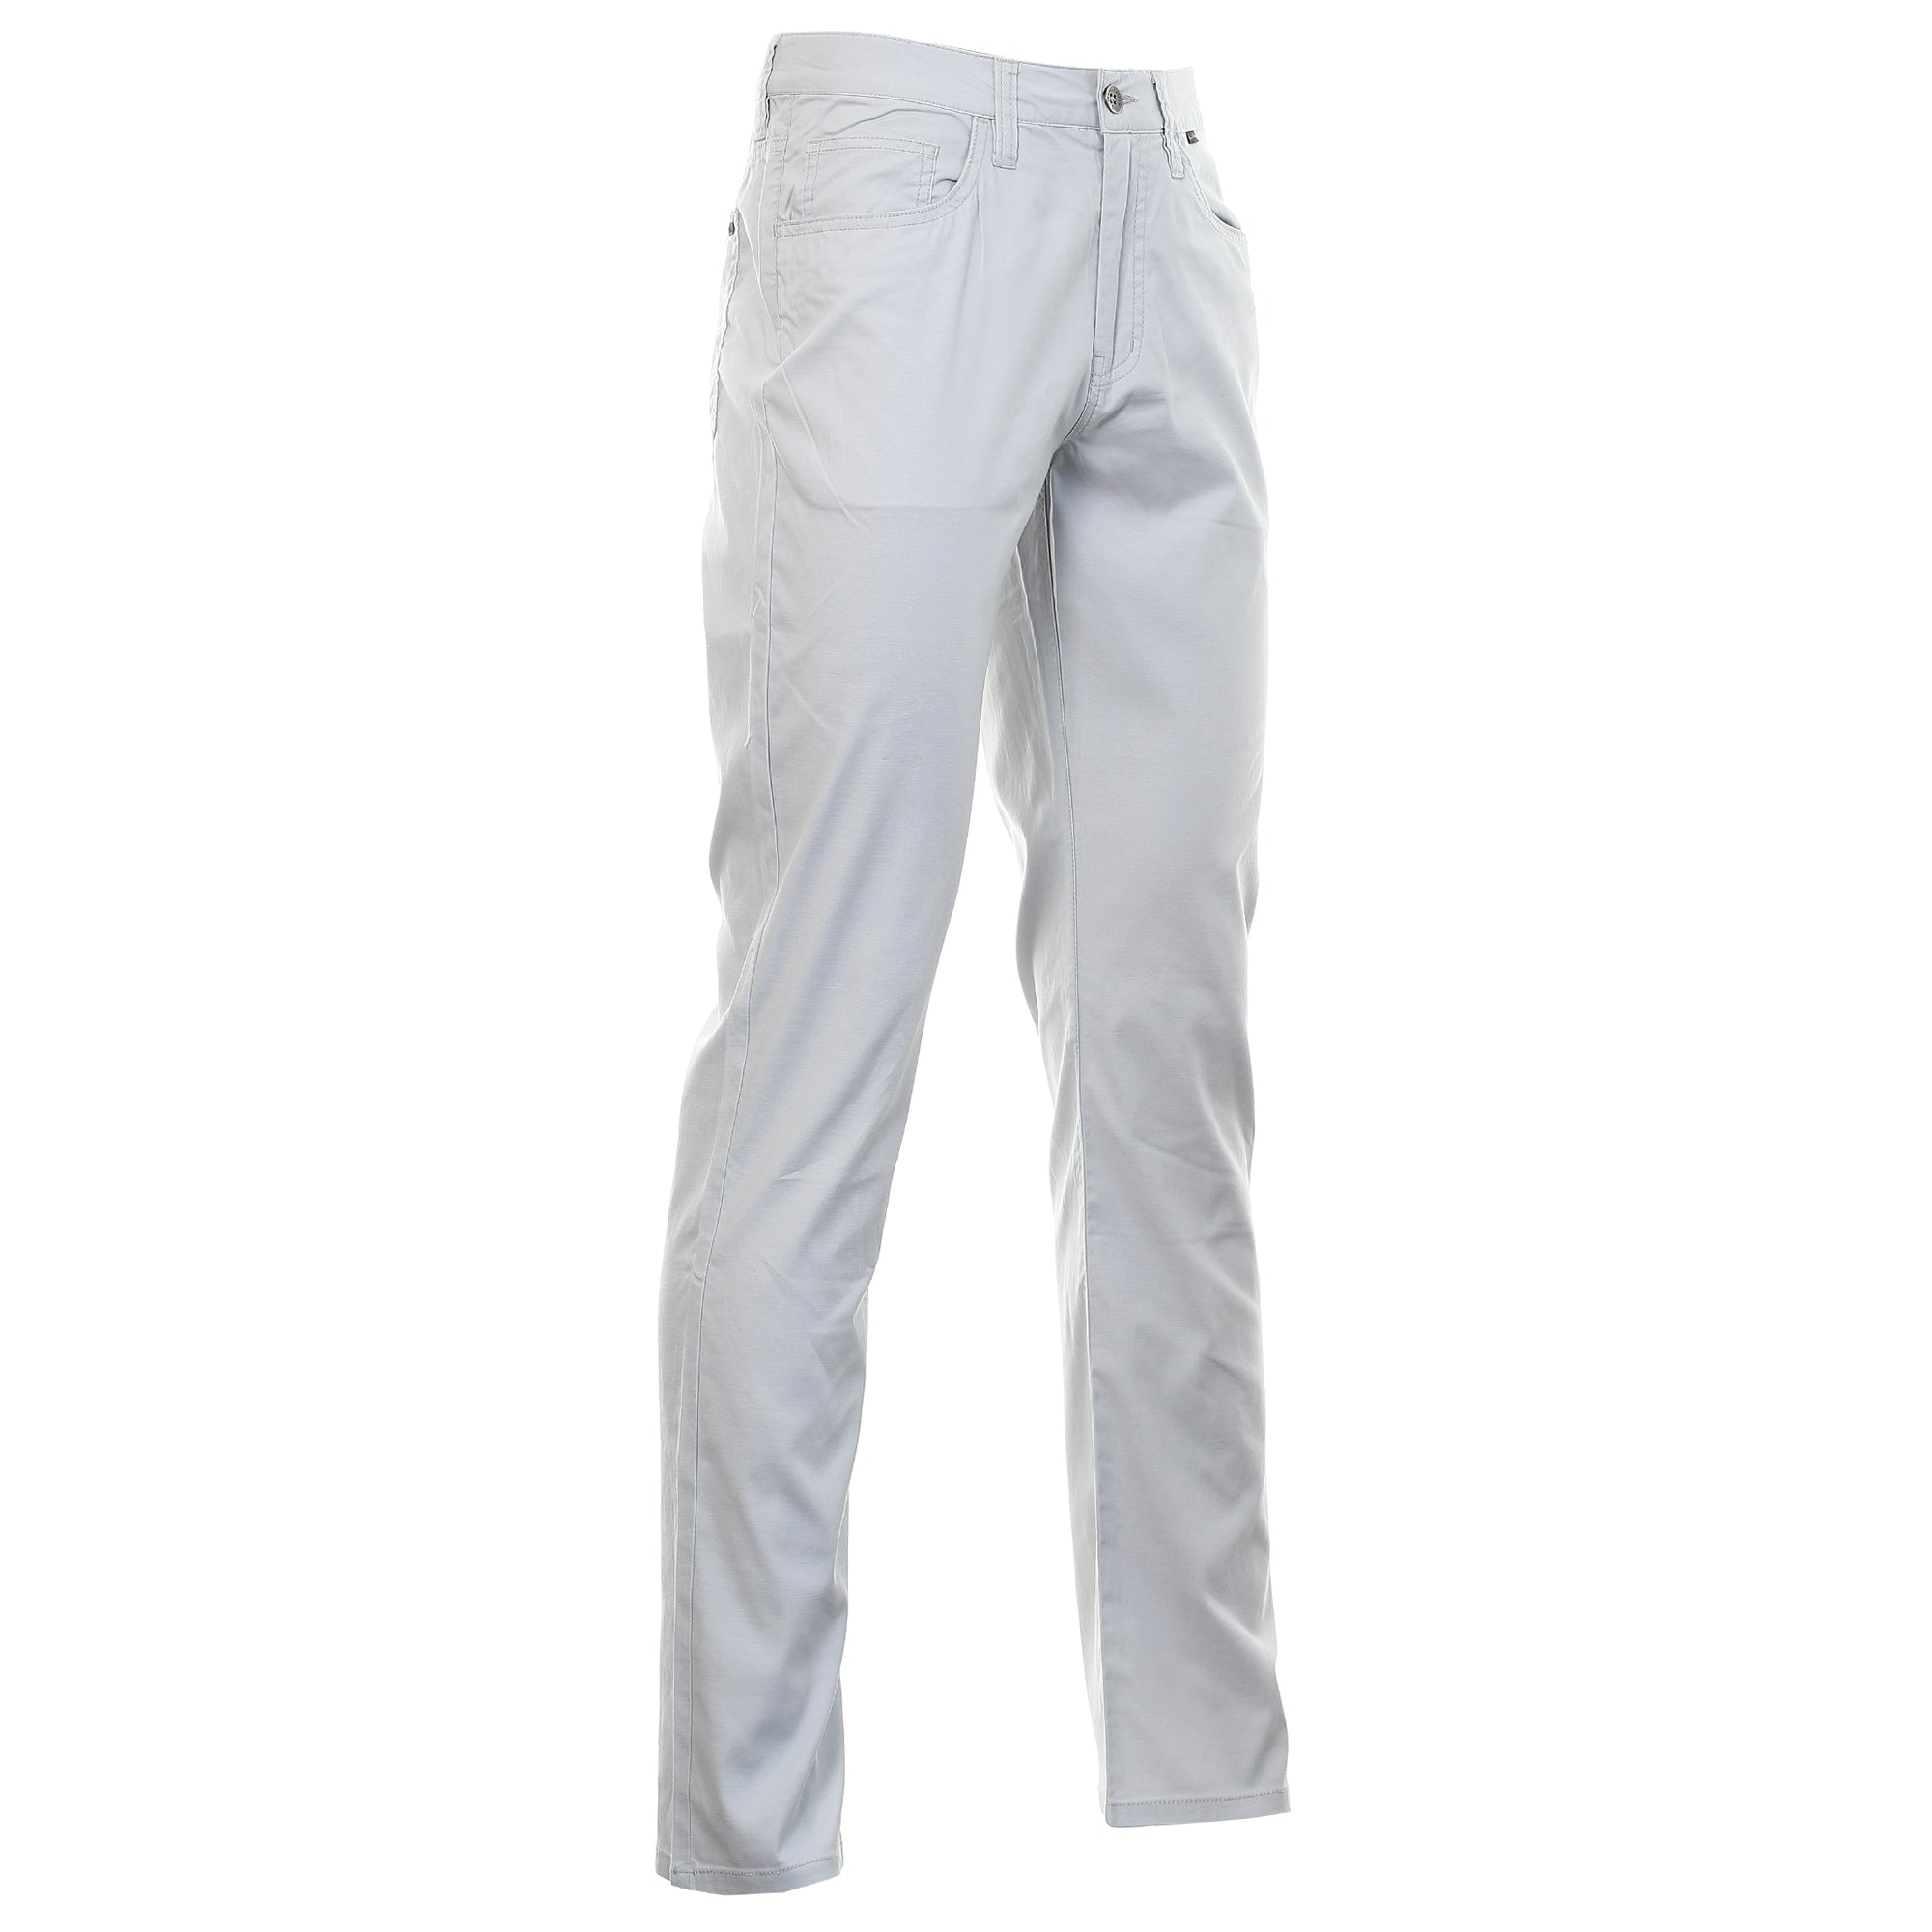 TravisMathew Trifecta Chino Trouser 1MO474